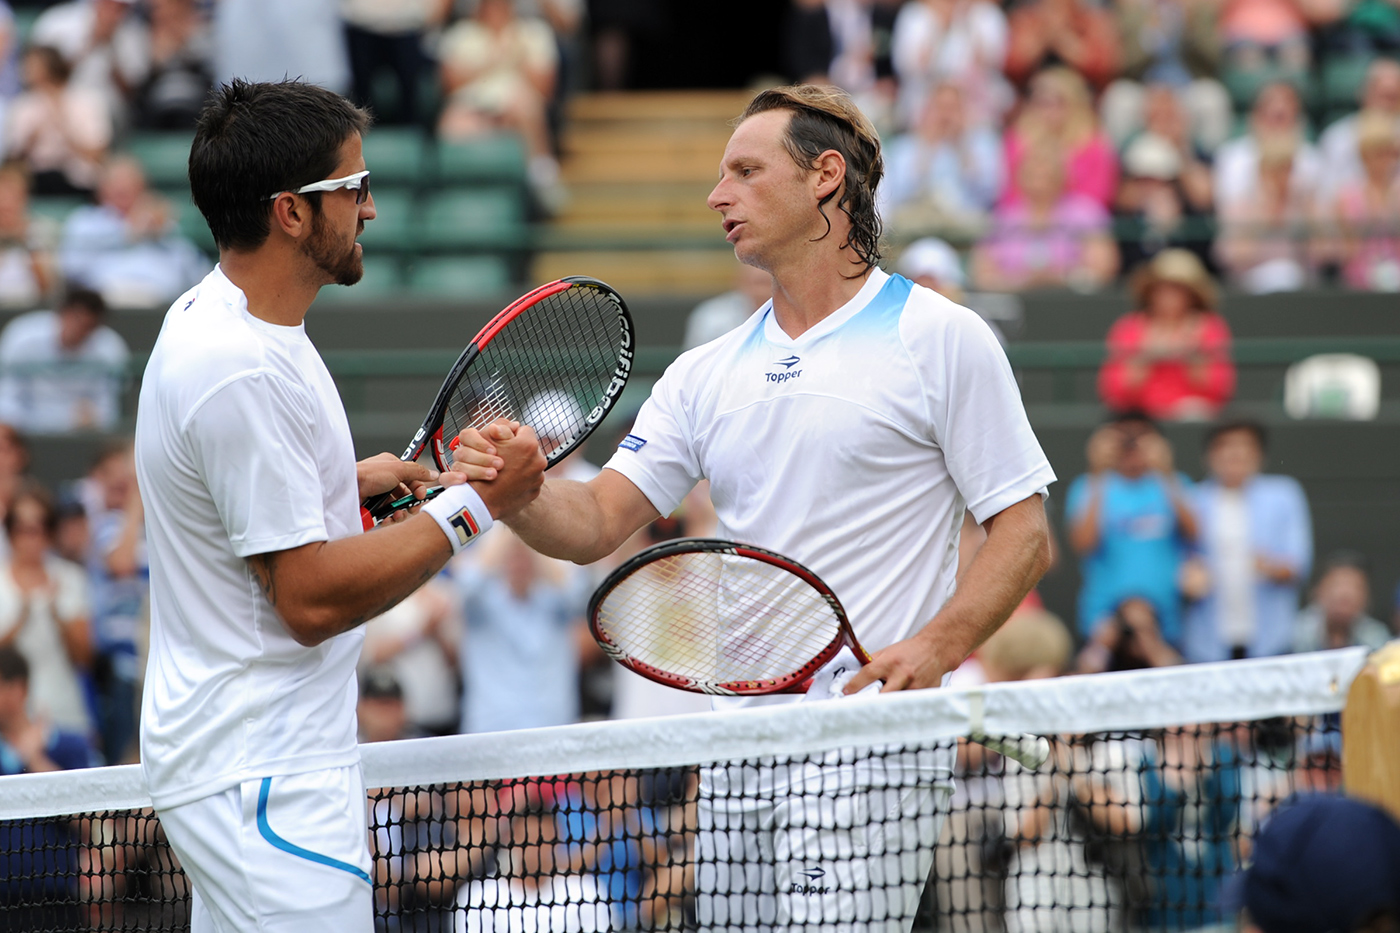 Janko Tipsarevic - Wearing Oakley Fast Jacket at Wimbledon - 2012